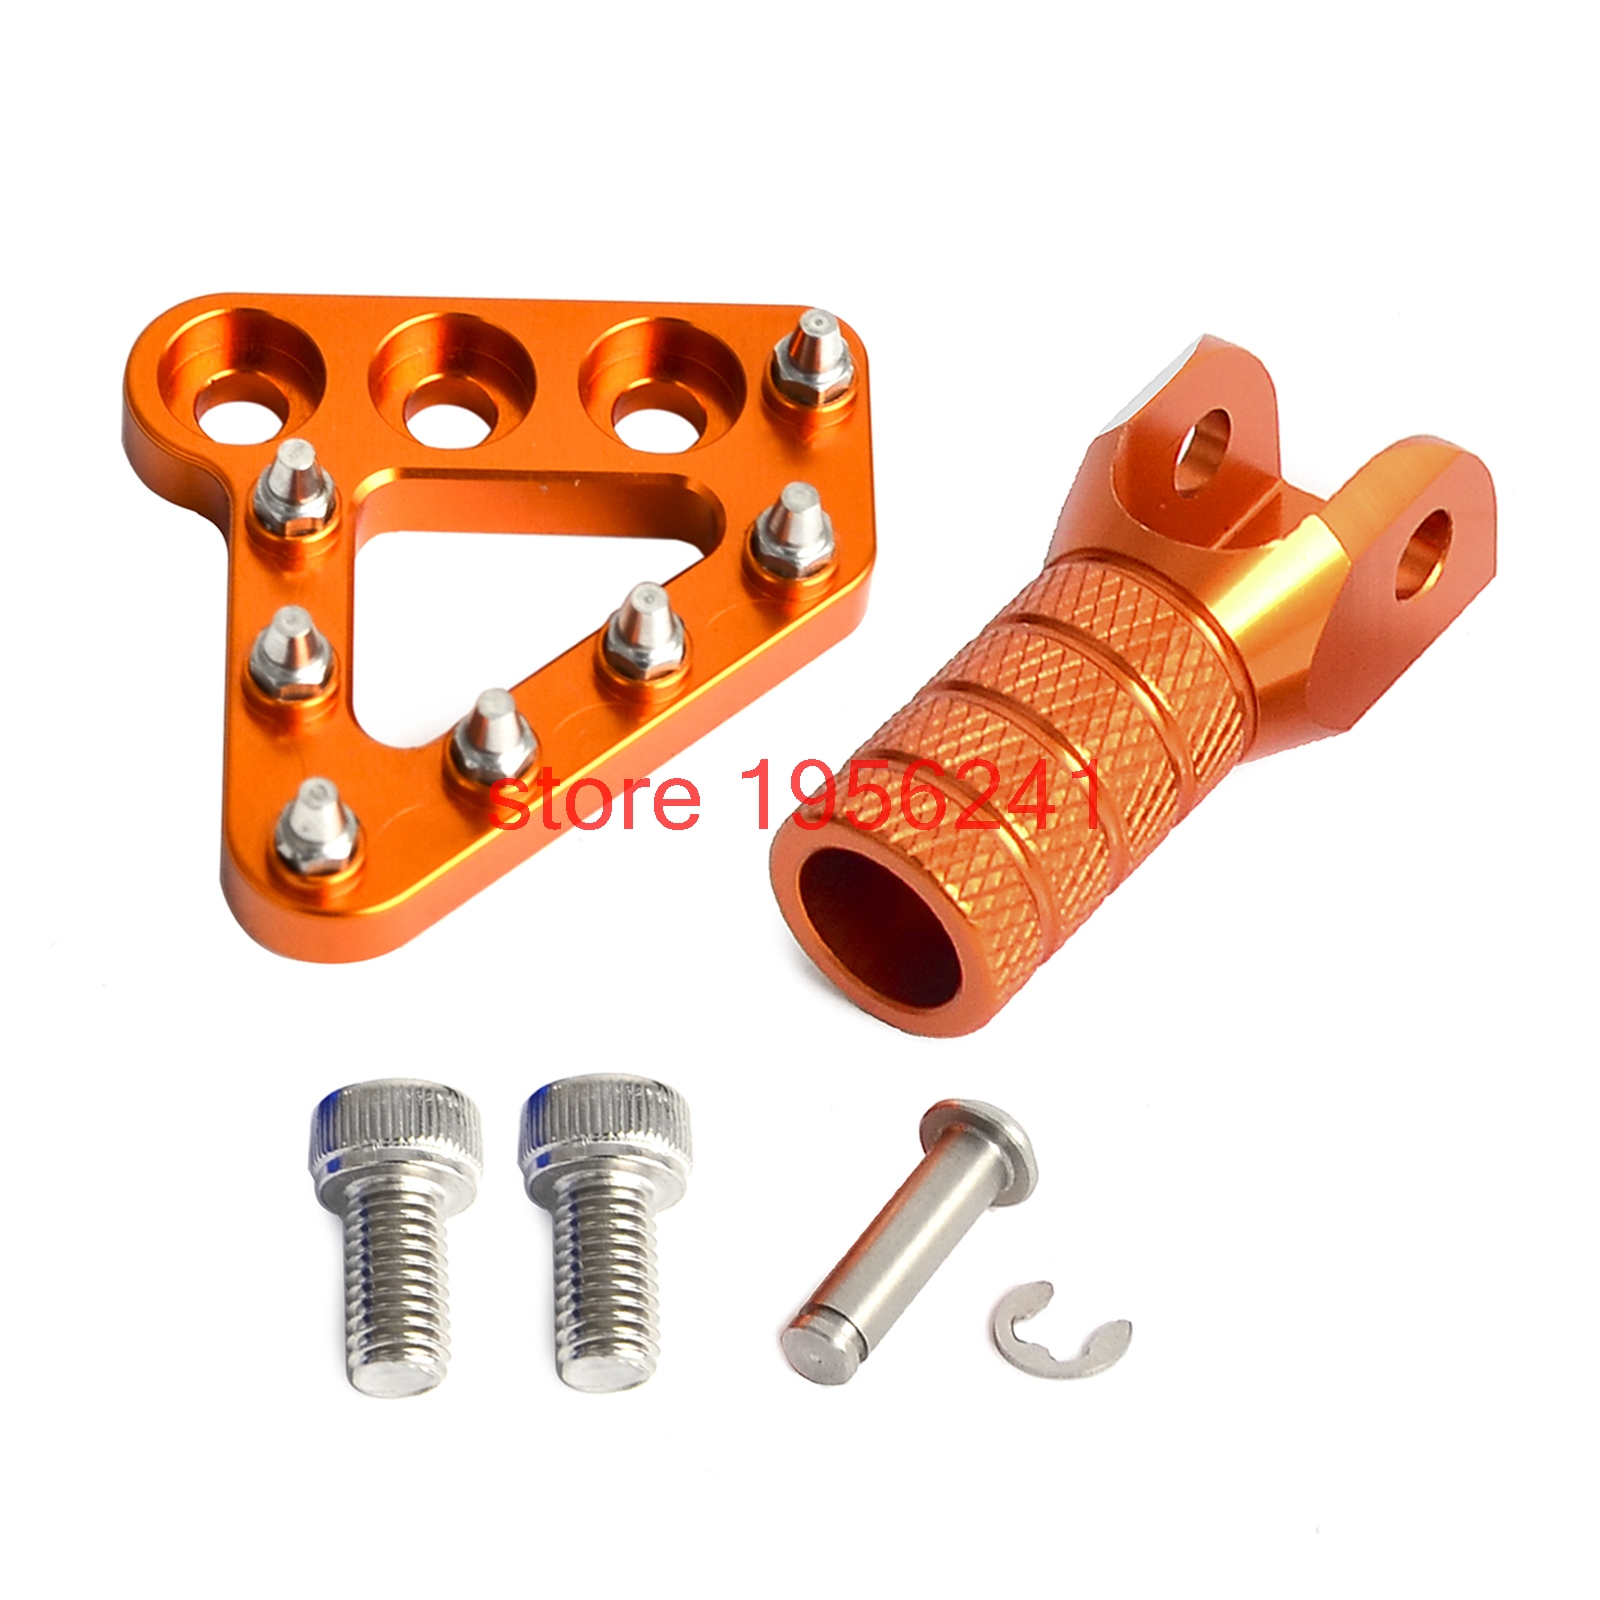 NICECNC Brake Pedal Step Plate & Shifter Lever Tip for KTM EXC SX SXF XC XCF EXCF 125 200 250 300 350 400 450 525 530 2004-2015 orange billet rear brake pedal step tip for ktm 125 530 690 950 990 sx exc xcf sxf xc xcw excf excw excf duke adventure